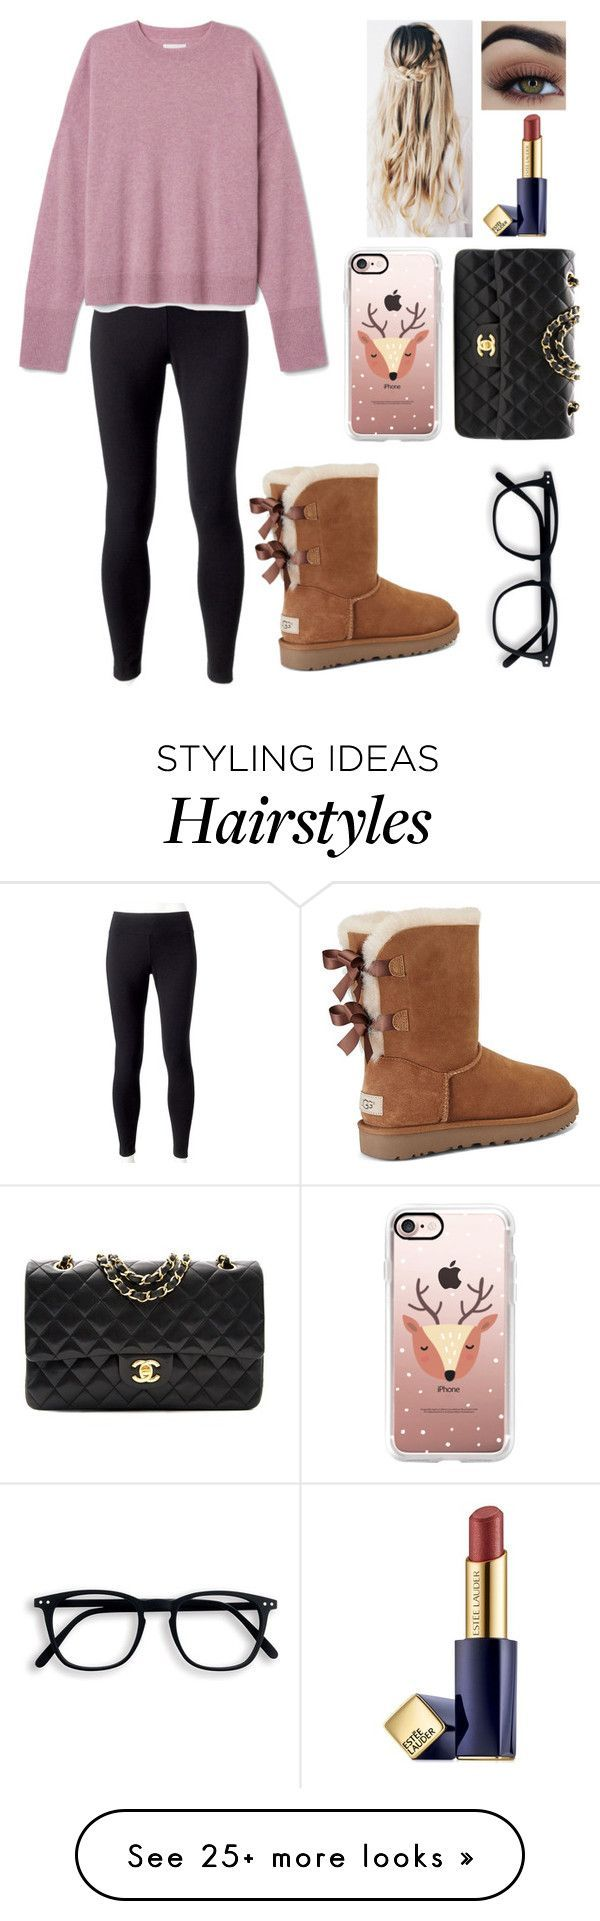 11-29-16 by blessed-with-beauty-and-rage on Polyvore featuring UGG, Casetify, Estée Lauder, Jockey and Chanel